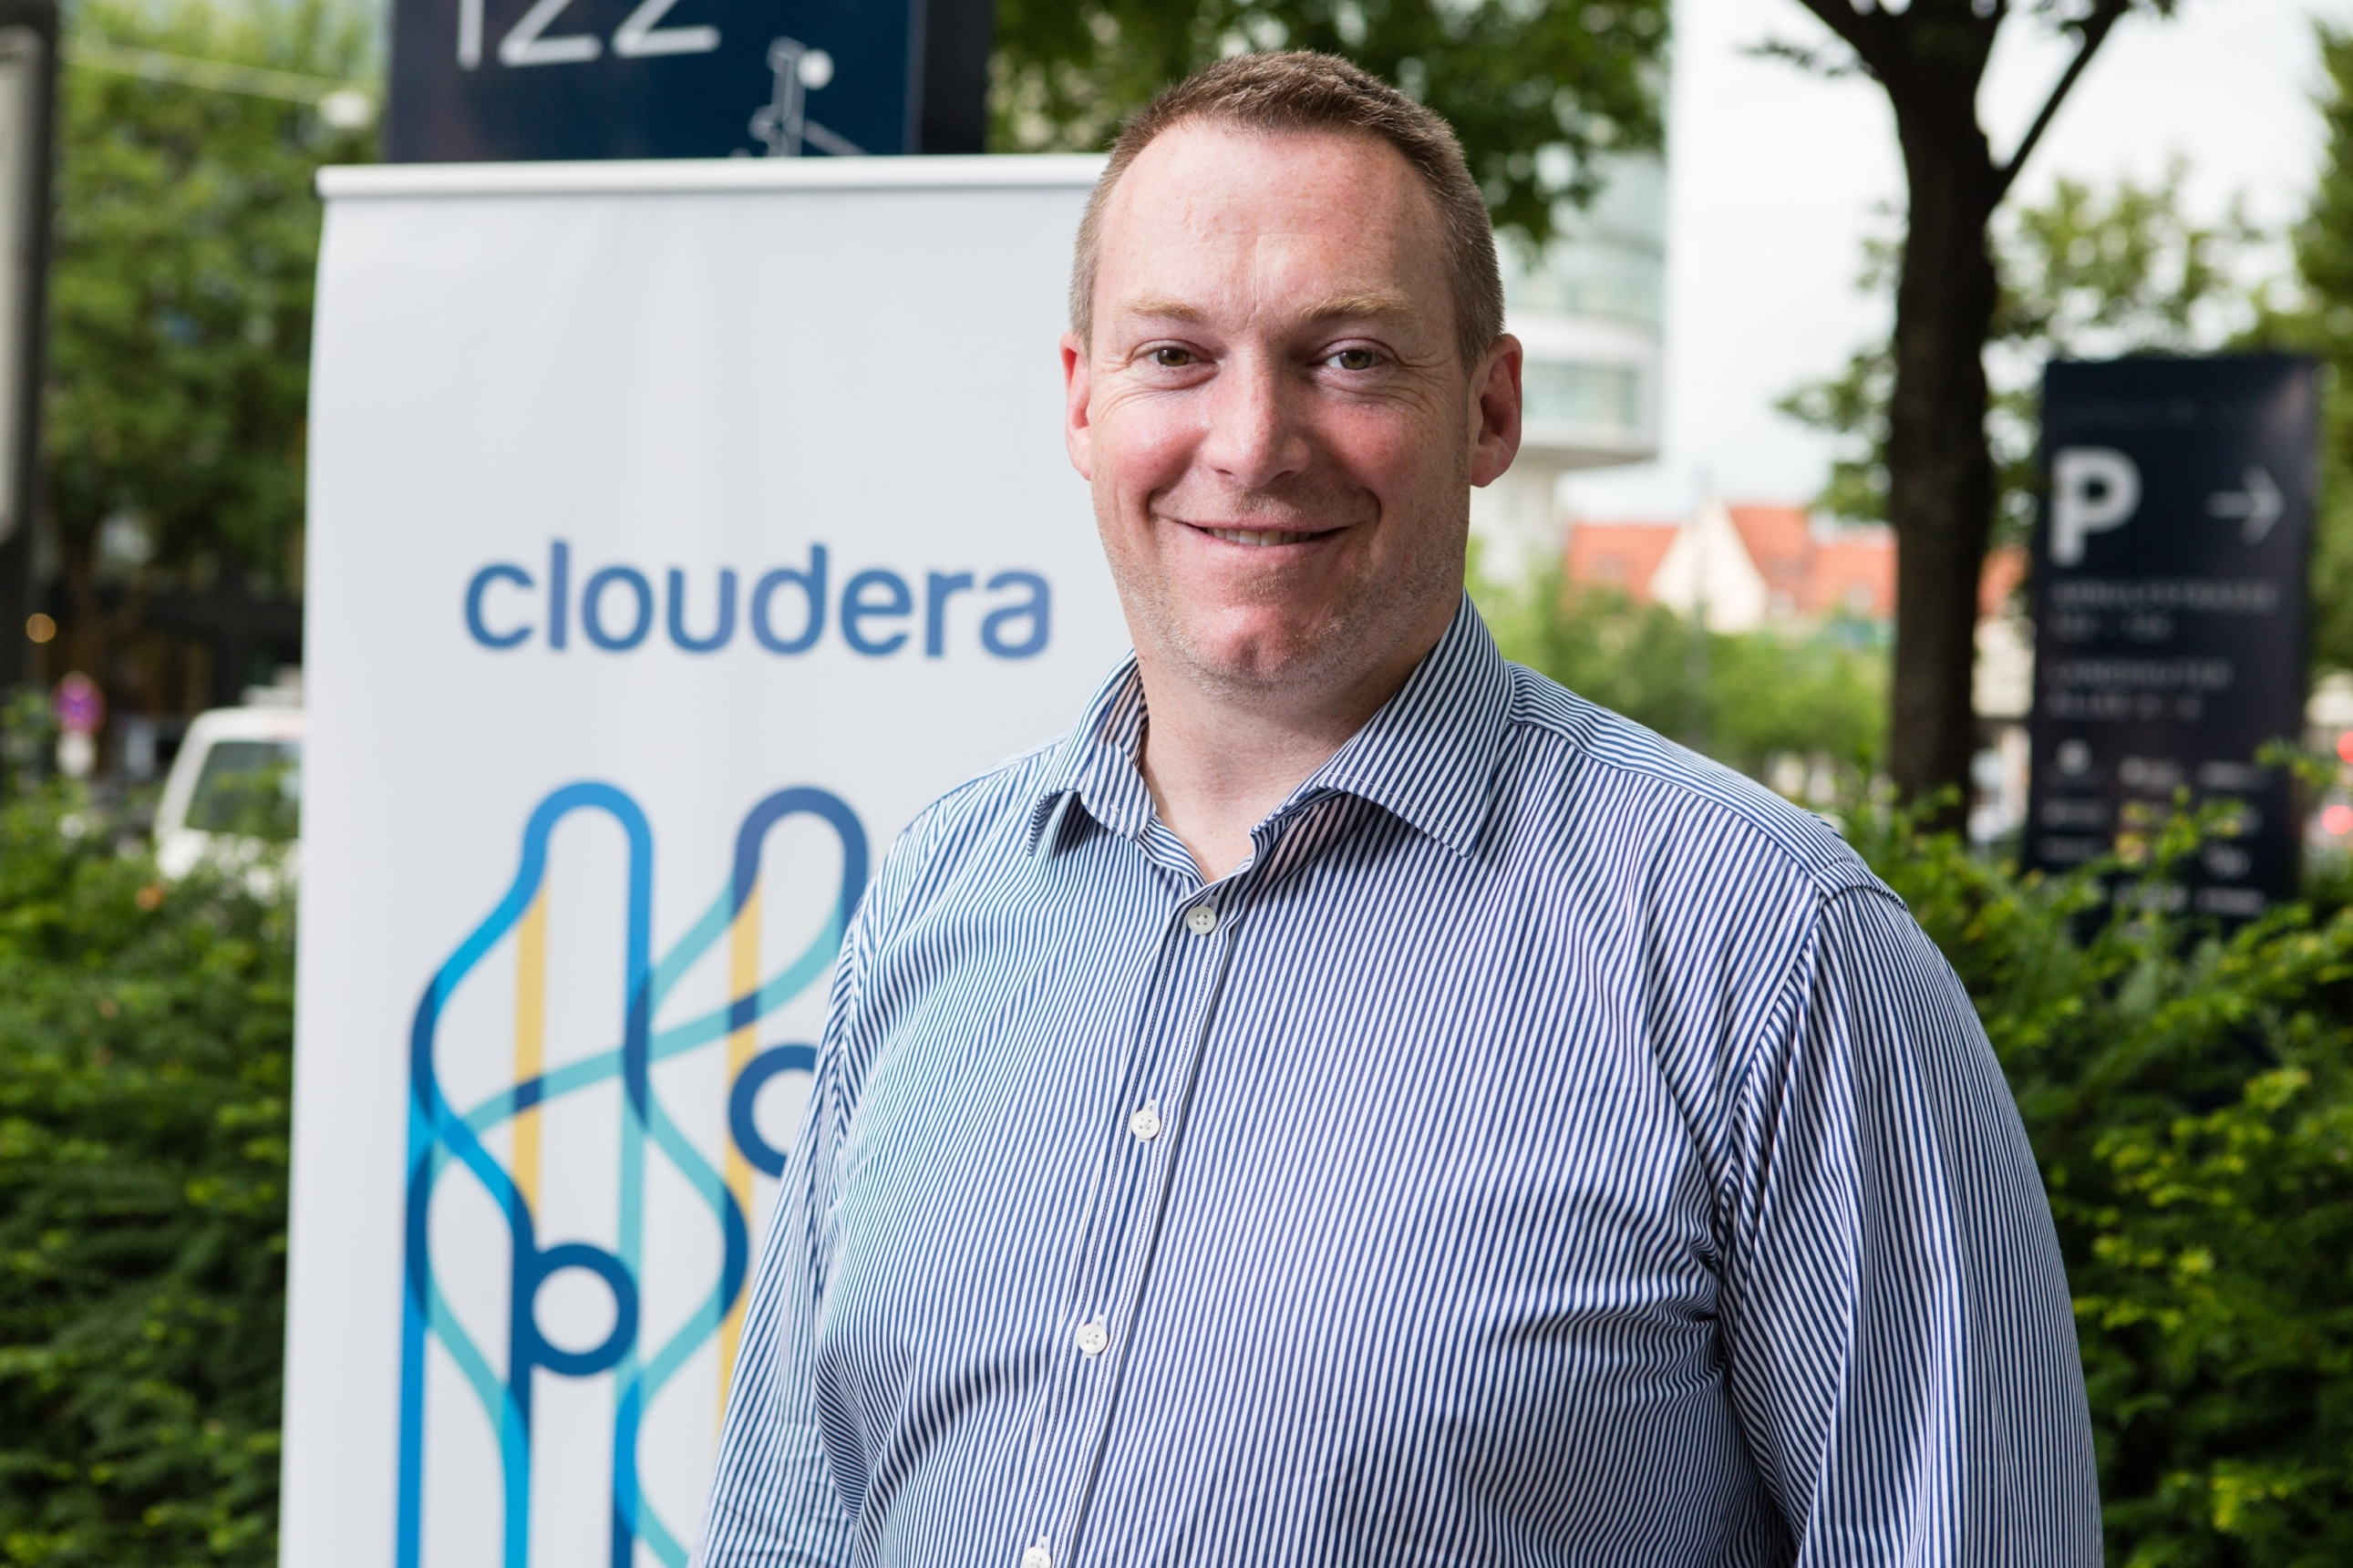 image-02-mr-david-pieterse-cloudera-vp-of-emea